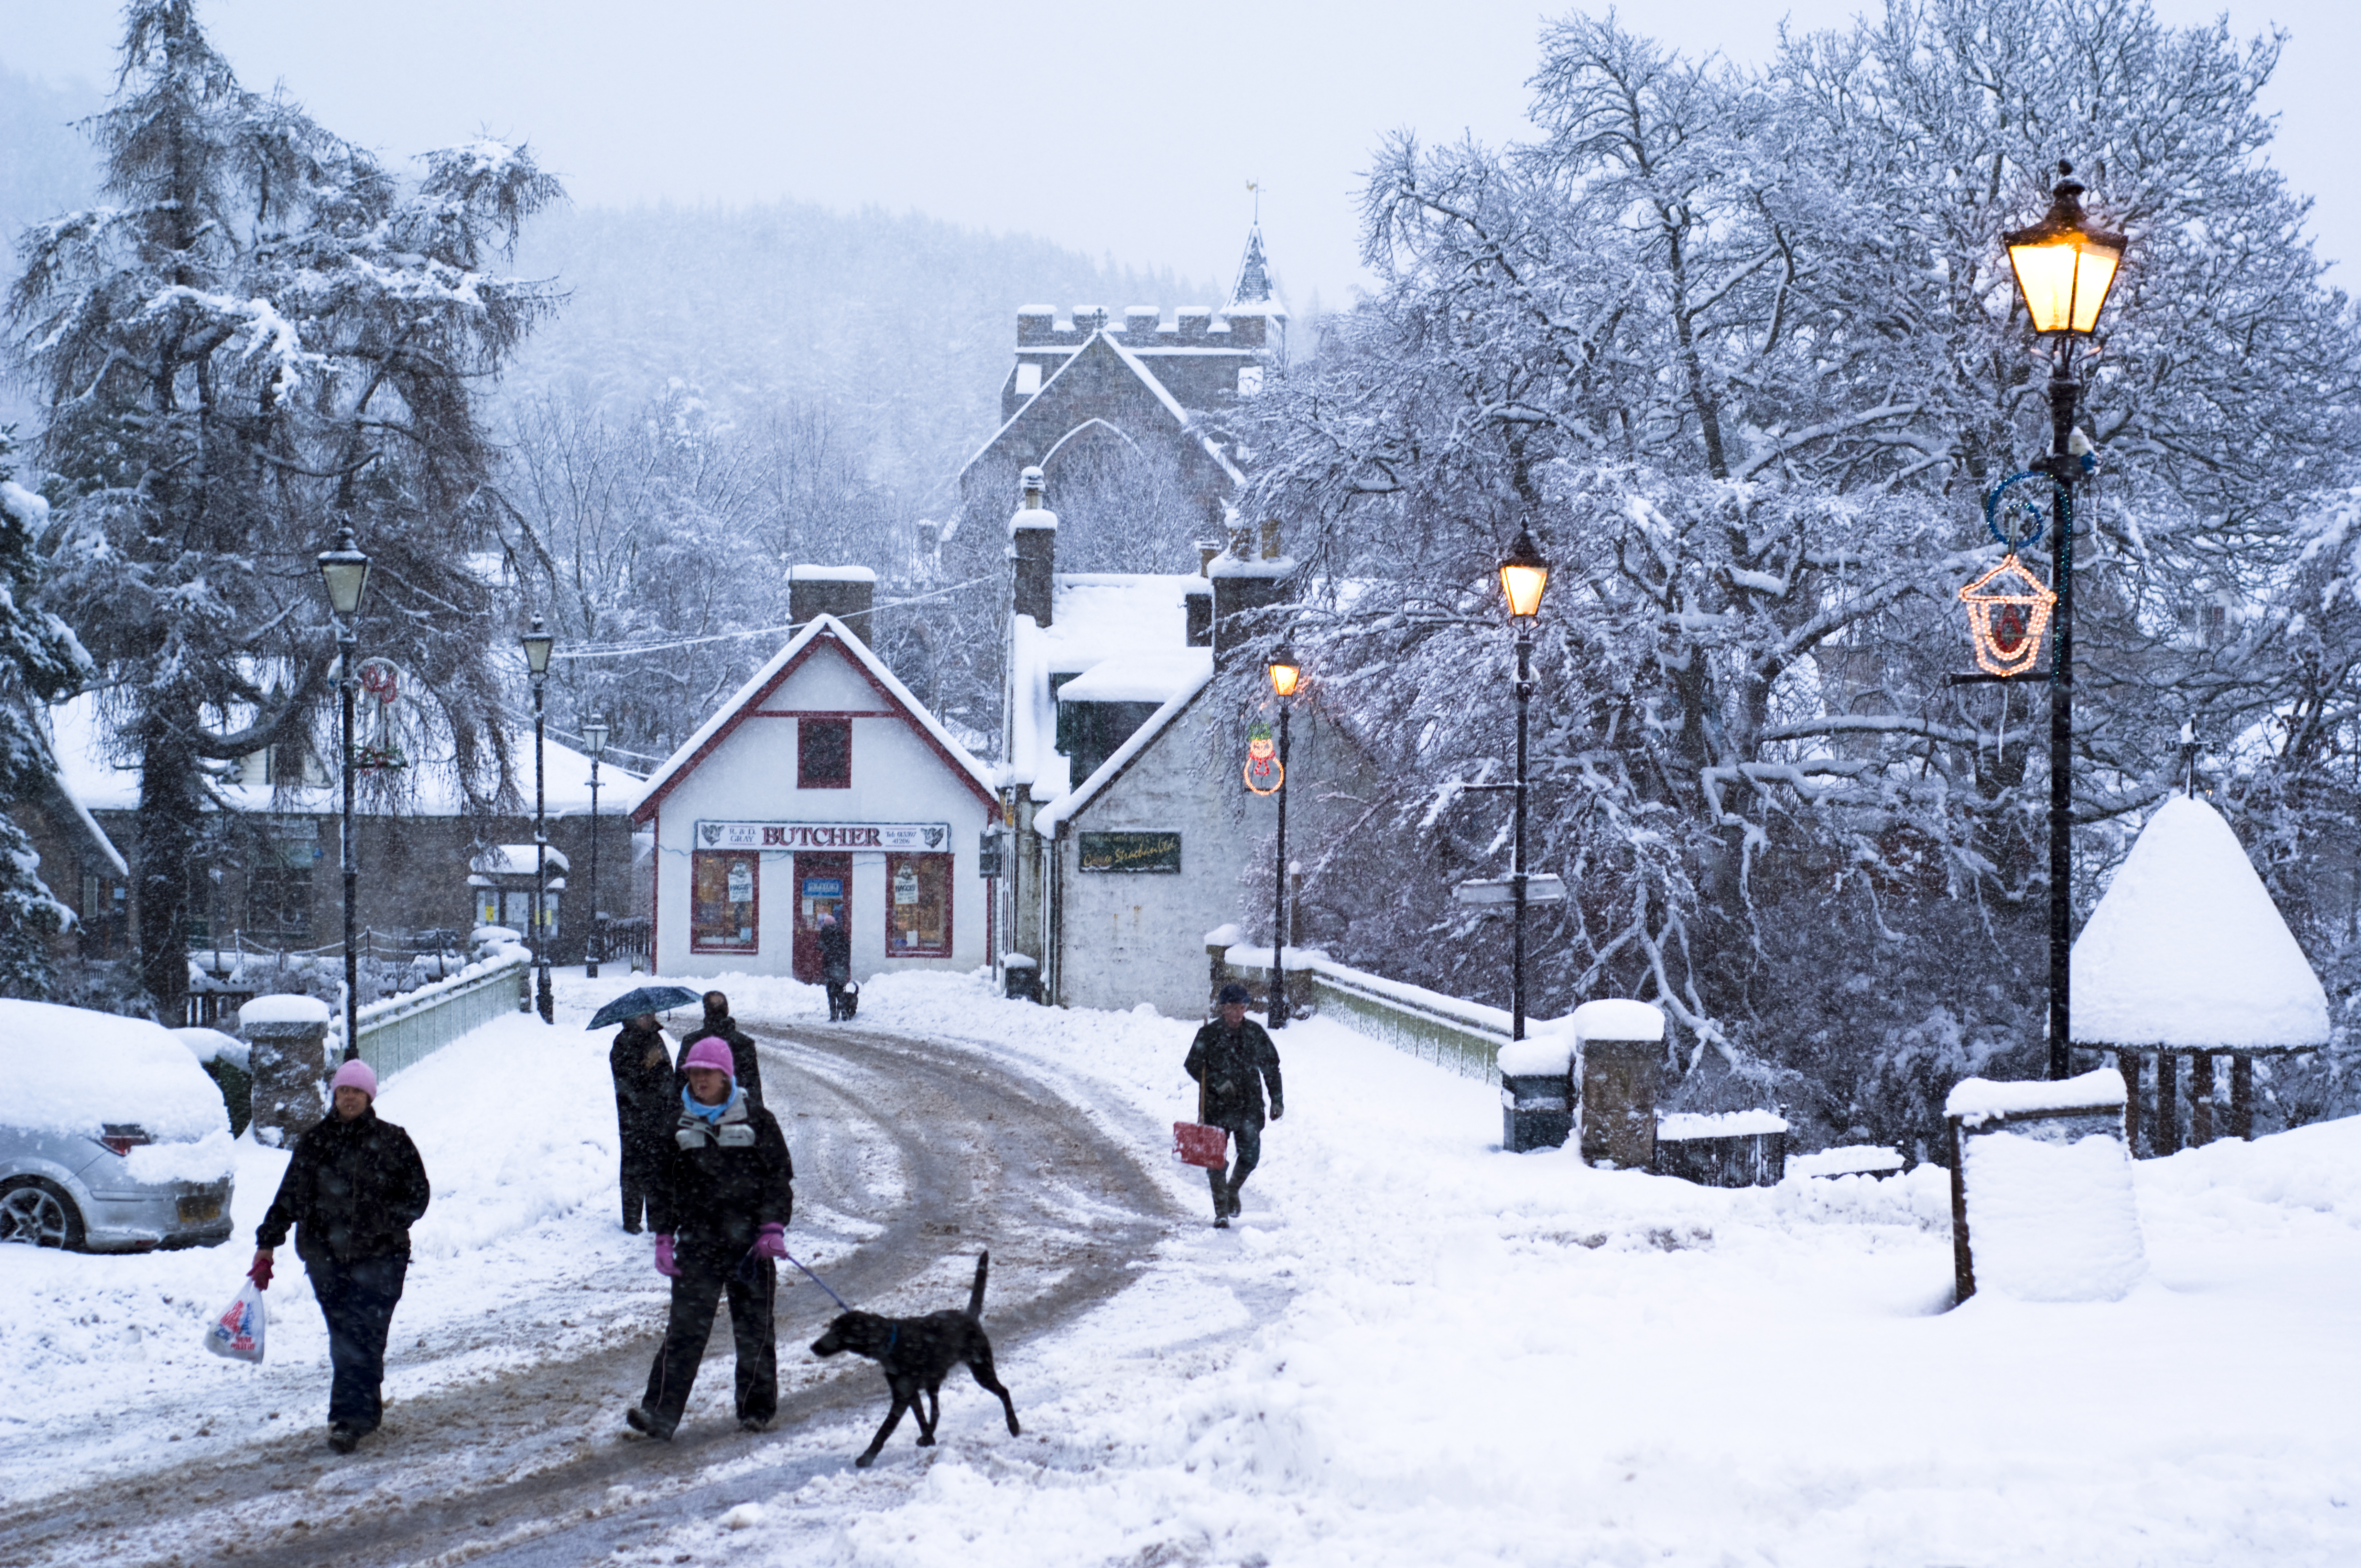 (Picture: Photolibrary/Getty) Snowfall in Braemar village in the Scottish highlands (Cairngorms National Park), dog and villagers in the main street